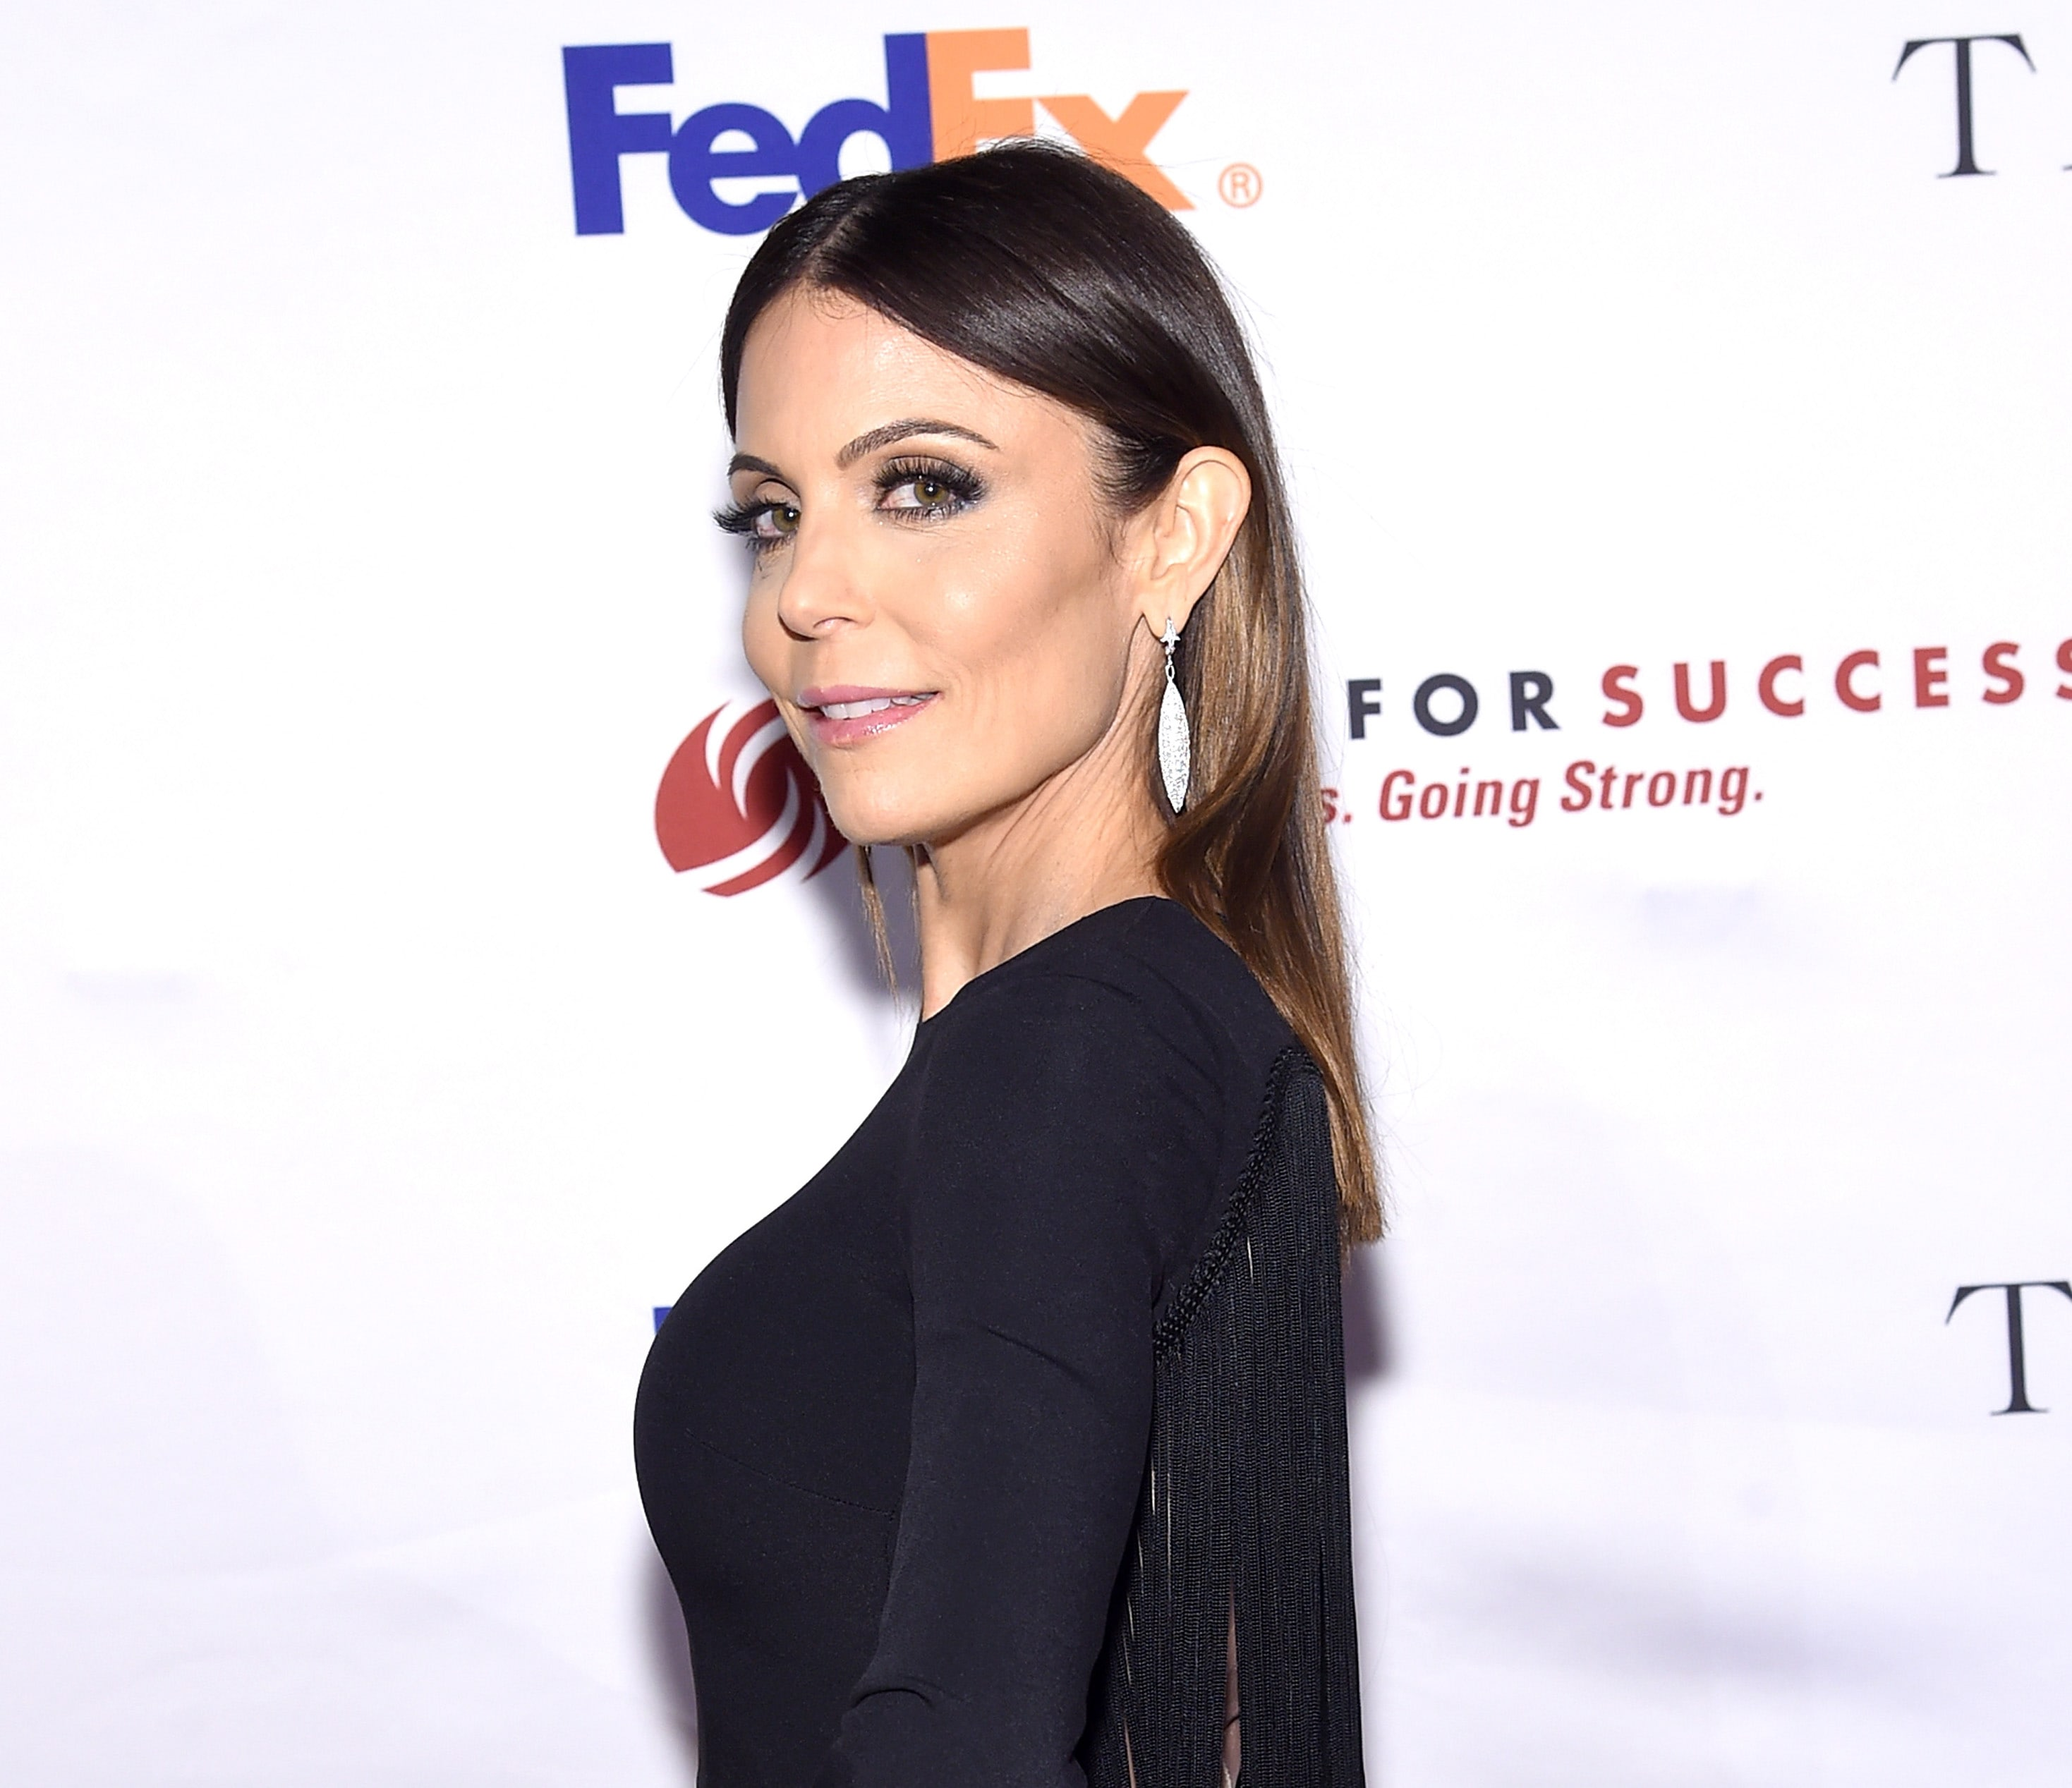 Bethenny Frankel Quitting The Real Housewives Of New York City Over Dennis Shields The Hollywood Gossip